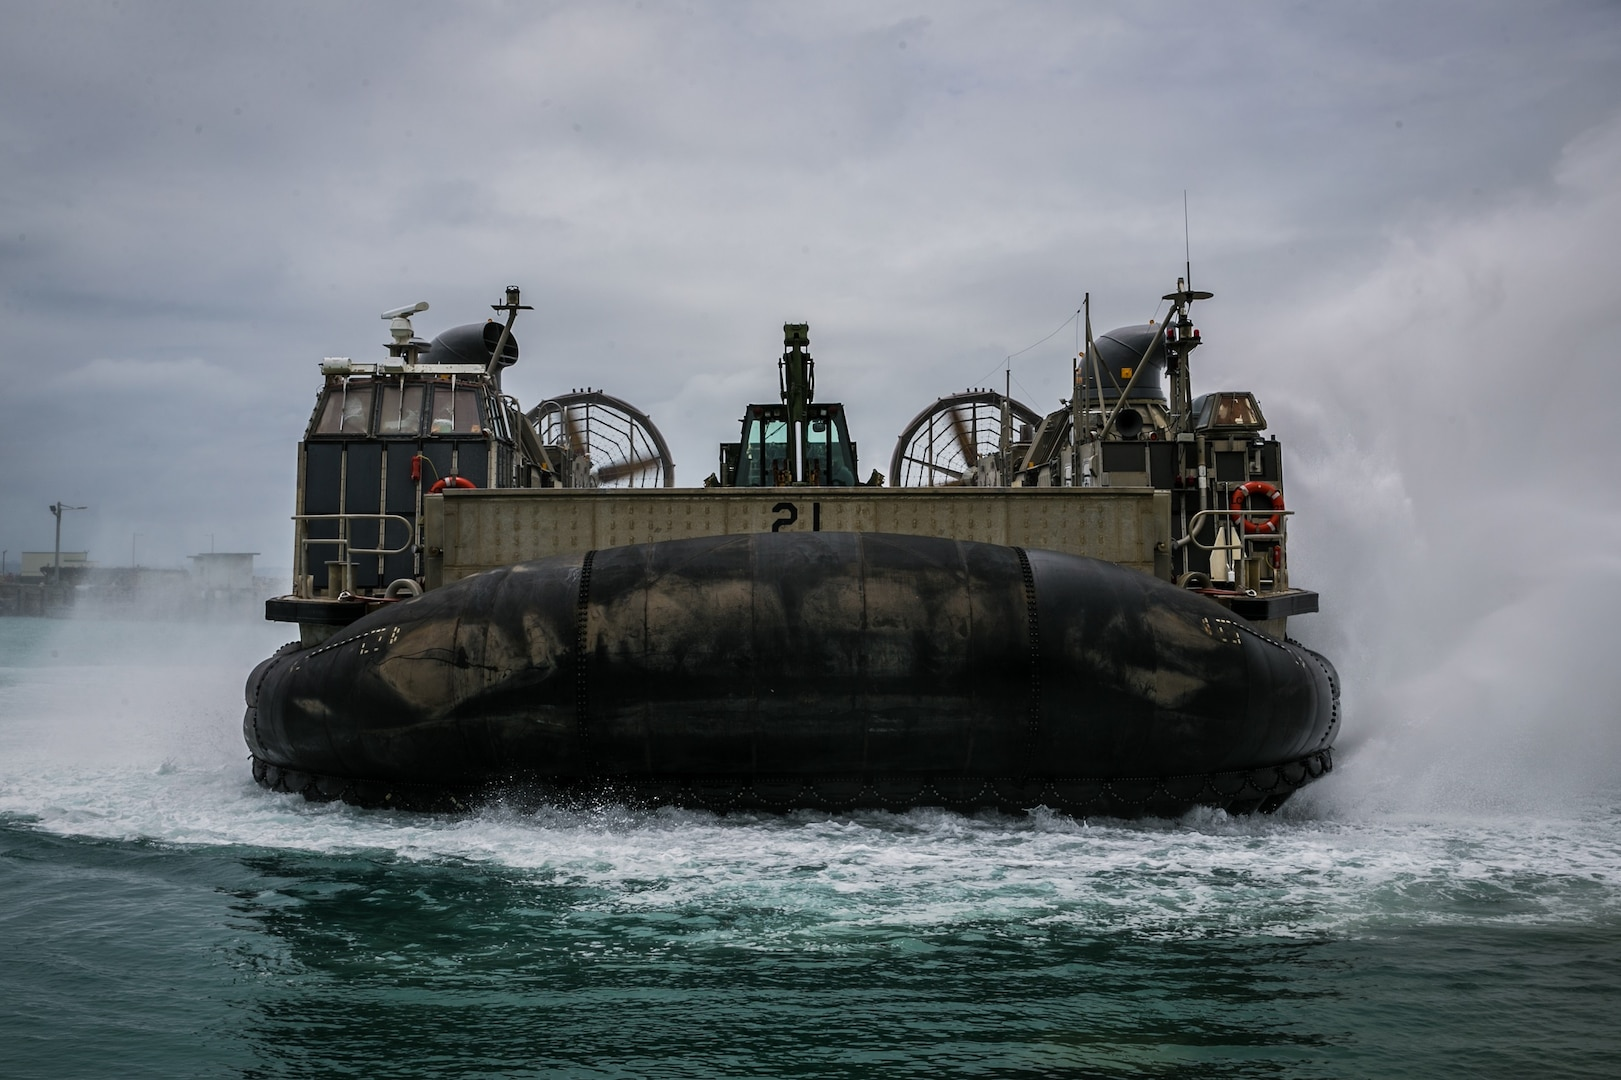 A U.S. Naval Landing Craft Air Cushion (LCAC) maneuvers into the ocean from Port Operations, Naval Base White Beach, Okinawa, Japan, June 1, 2021. Marines from 3d Marine Logistics Group (MLG) and Sailors from Naval Beach Unit (NBU) 7 integrated to load and transport personnel and equipment in support of exercise Poseidon's Watchtower. NBU-7 is an operational, forward deployed unit that directly contributes to the core capabilities of U.S. Maritime Sea Power by facilitating the movement of troops, equipment, vehicles and supplies from amphibious shipping across the beach. 3d MLG, based out of Okinawa, Japan, is a forward deployed combat unit that serves as III MEF's comprehensive logistics and combat service support backbone for operations throughout the Indo-Pacific area of respons